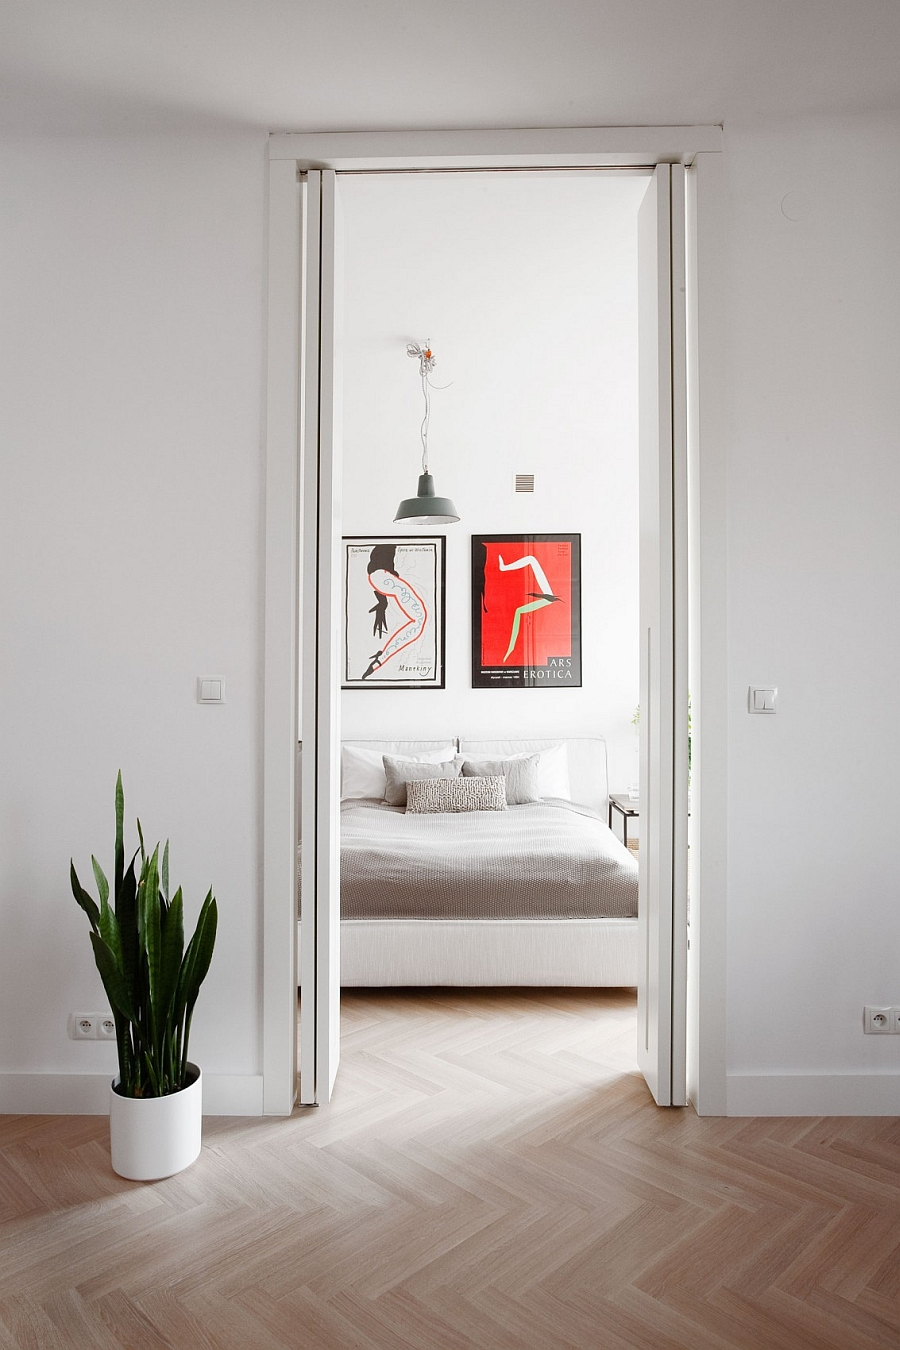 Vinatge Posters from the 70s and 80s add color to the contemporary bedroom